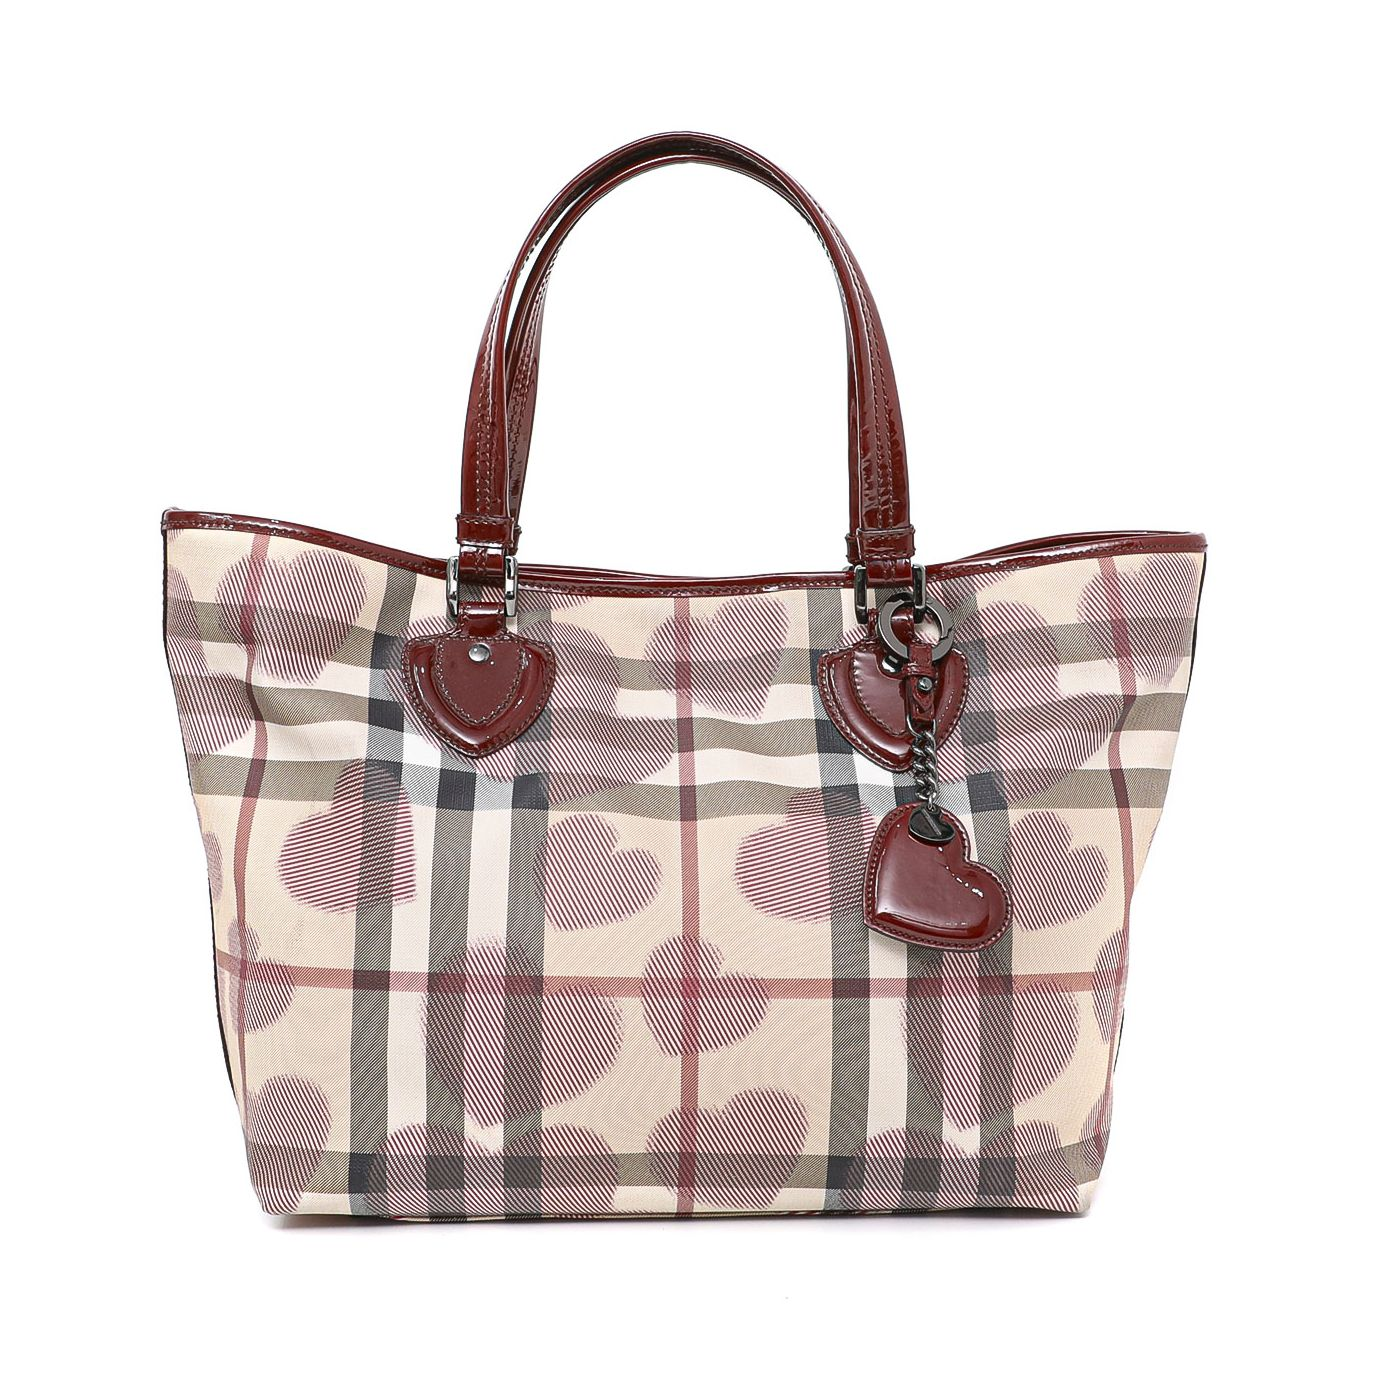 Burberry Red Check Heart Tote Bag